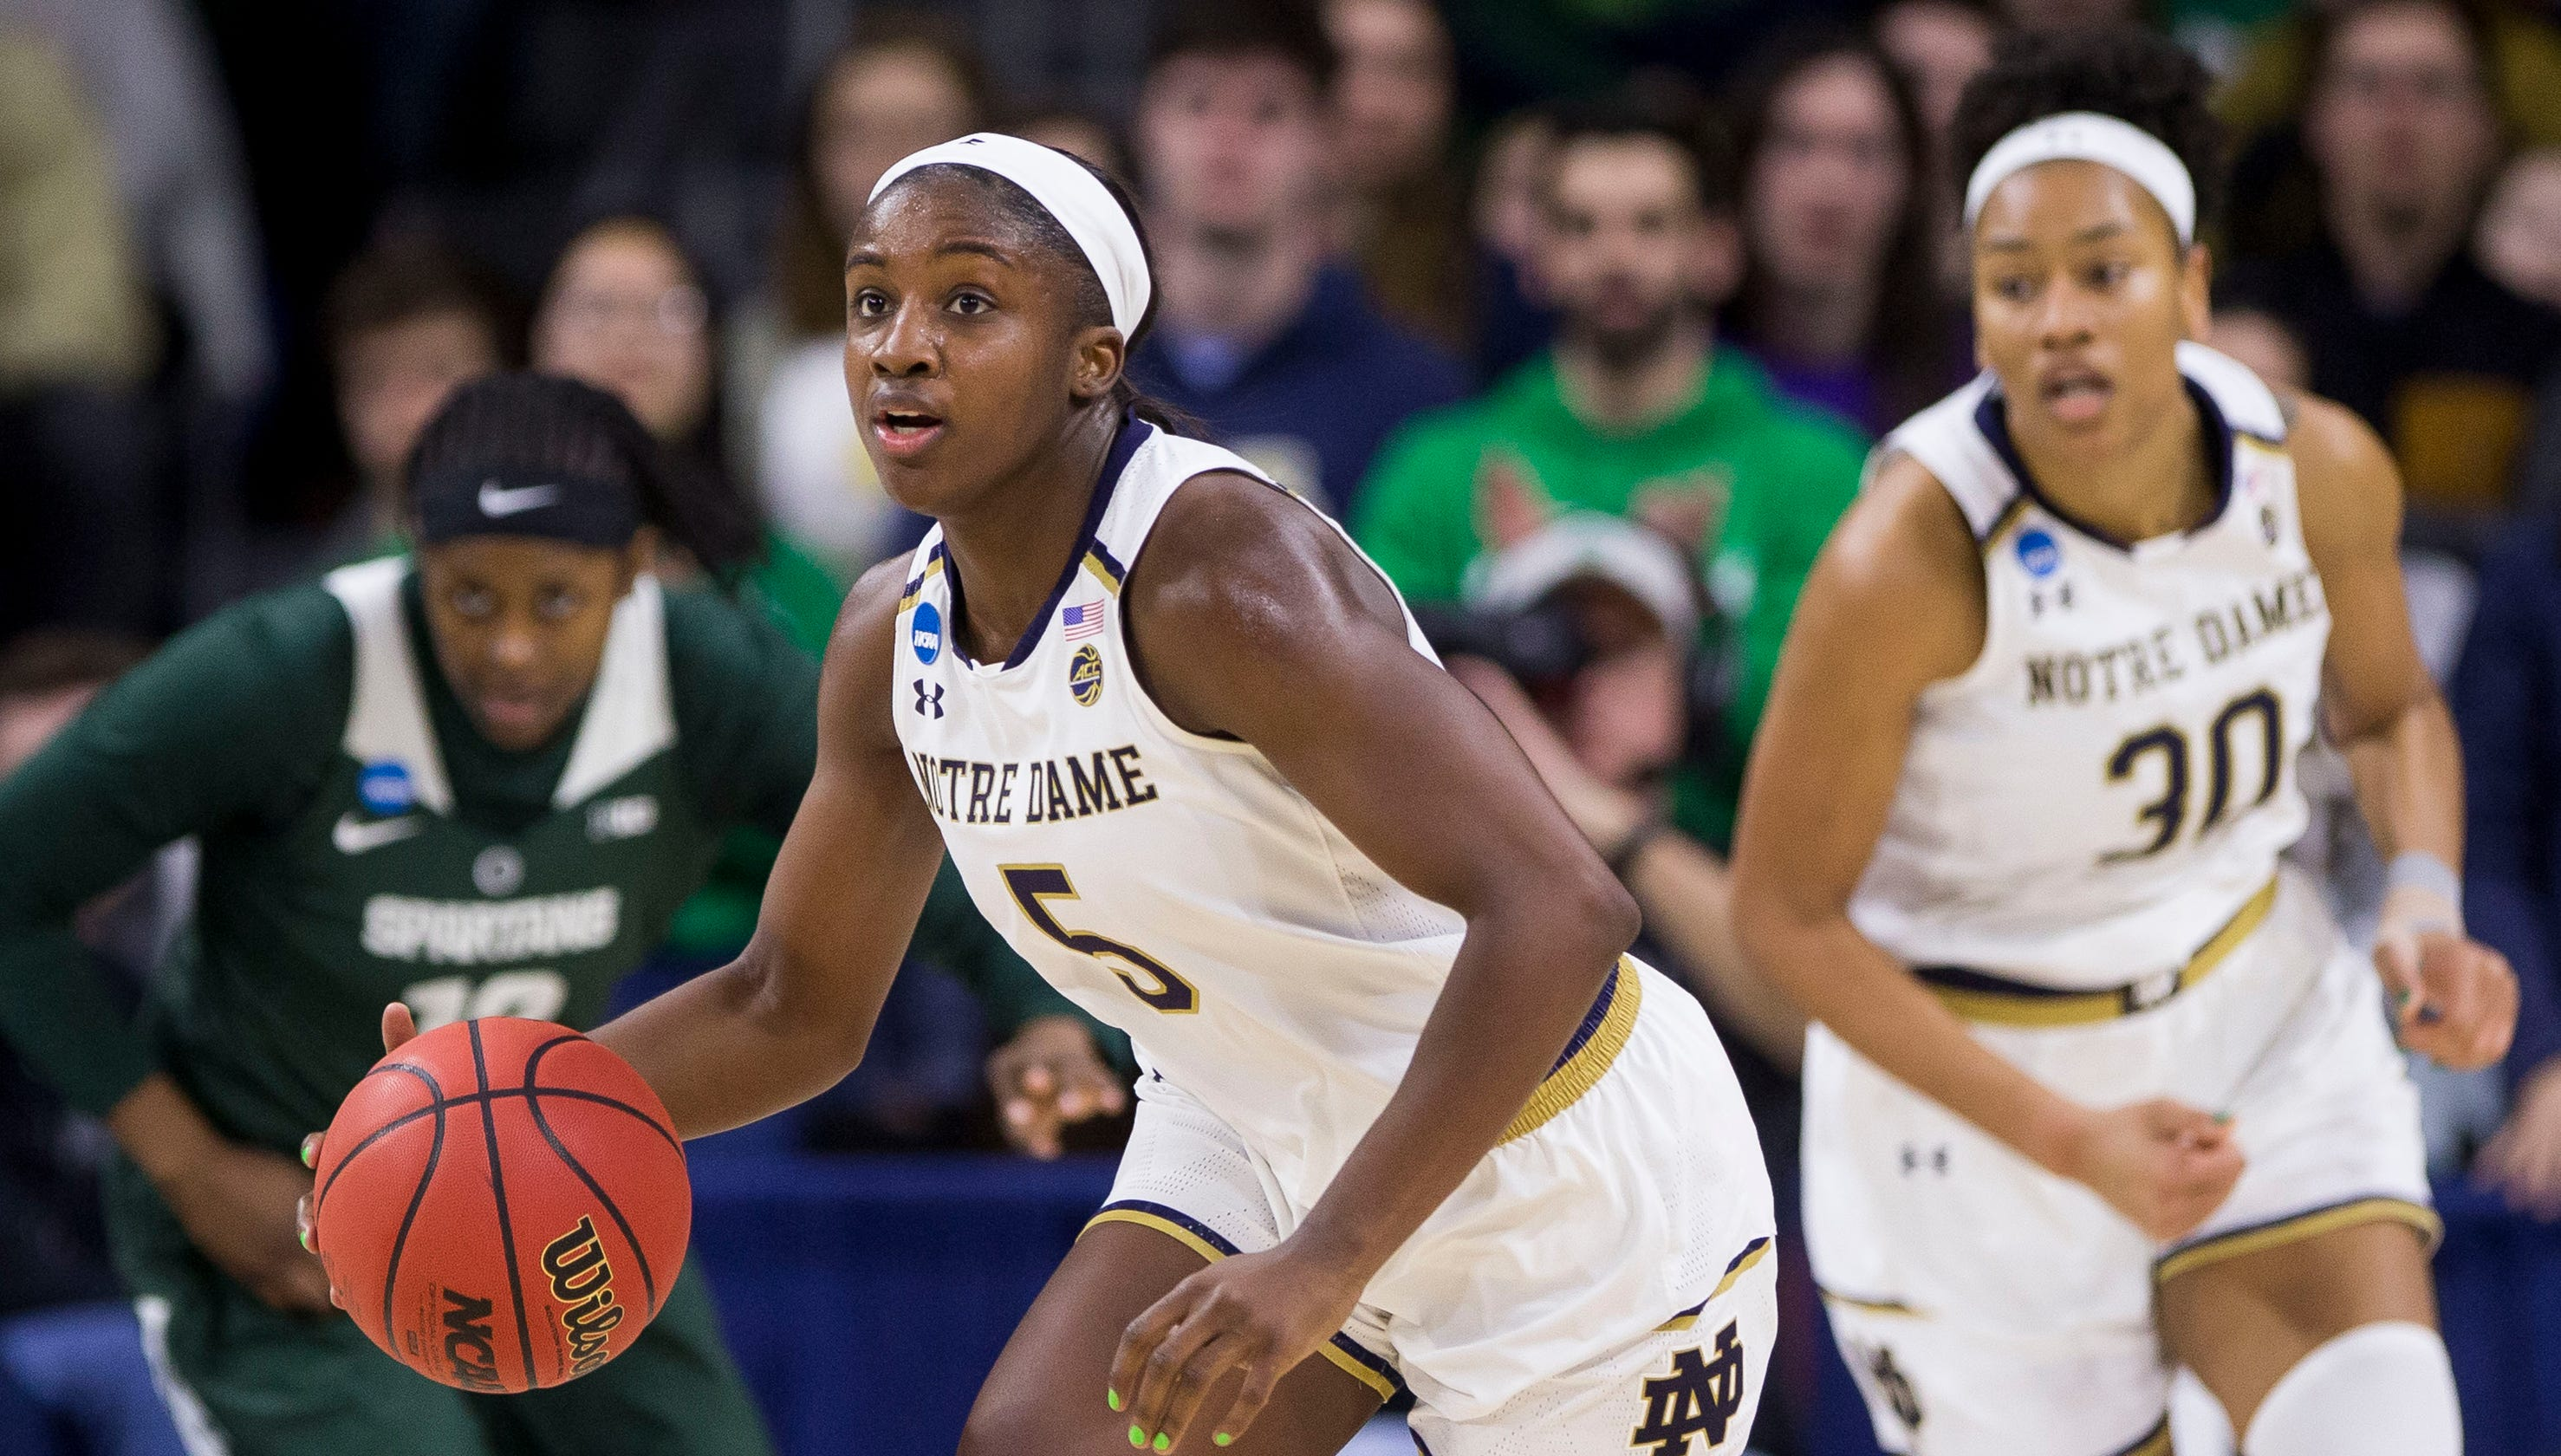 Notre Dame Women Advance To Basketball Sweet 16: Notre Dame Women's Basketball Beats Michigan State